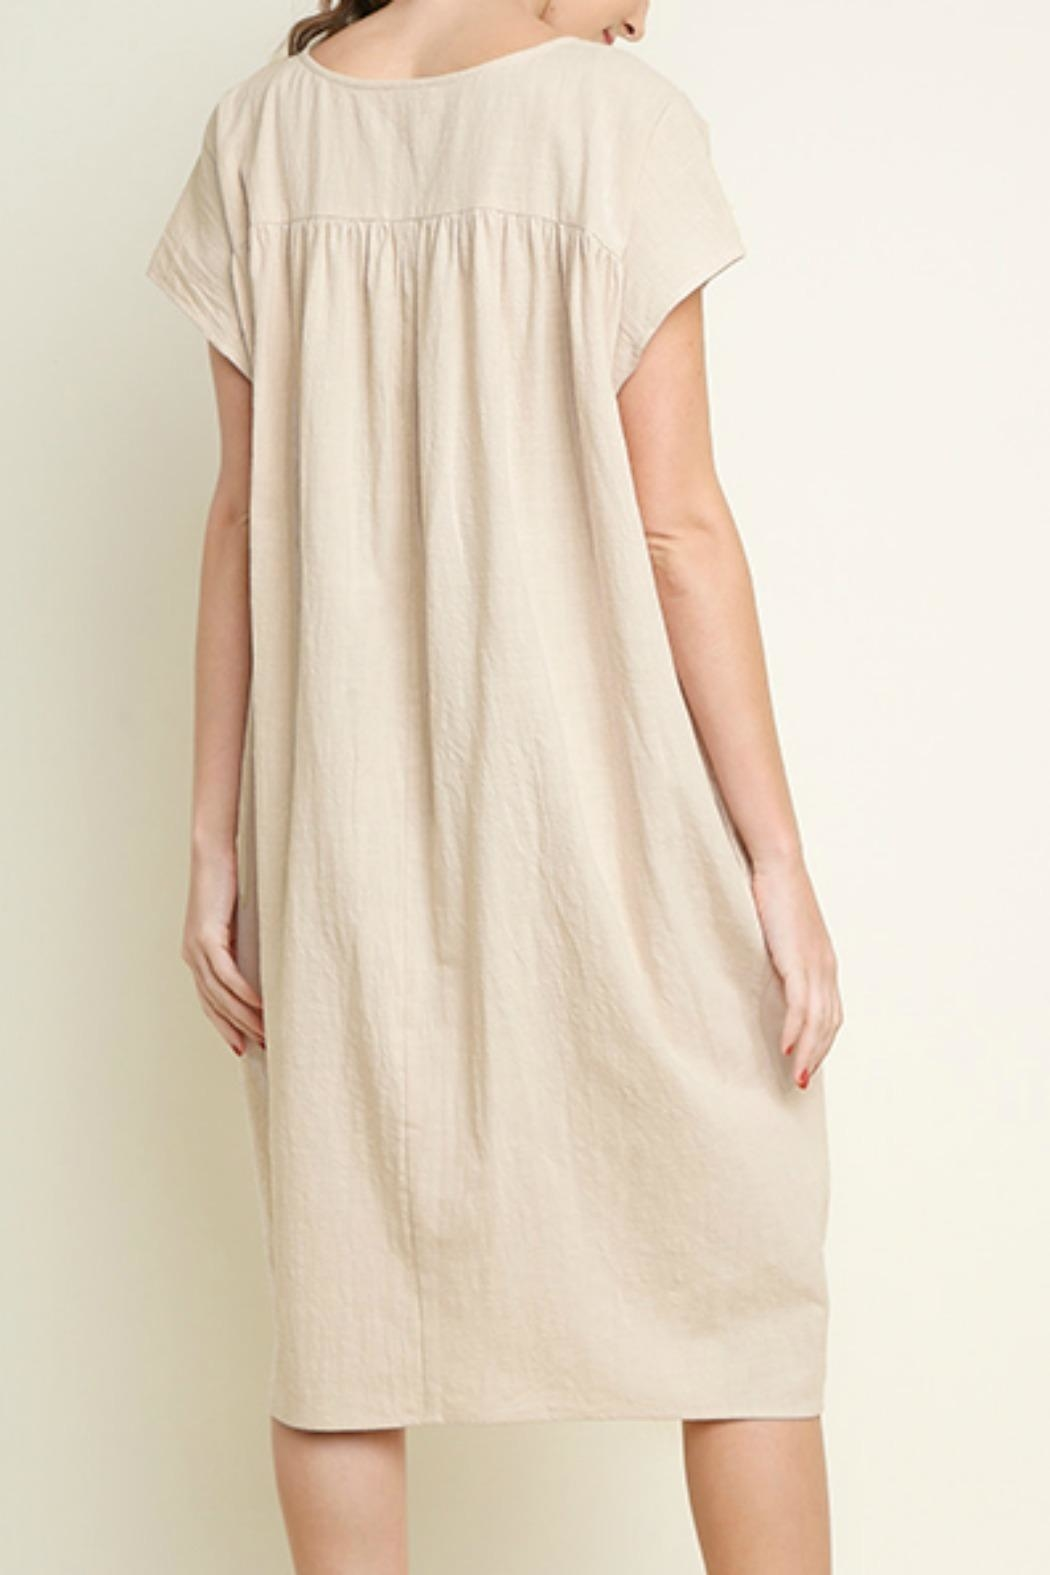 Umgee USA Cotton Pocket Dress - Back Cropped Image